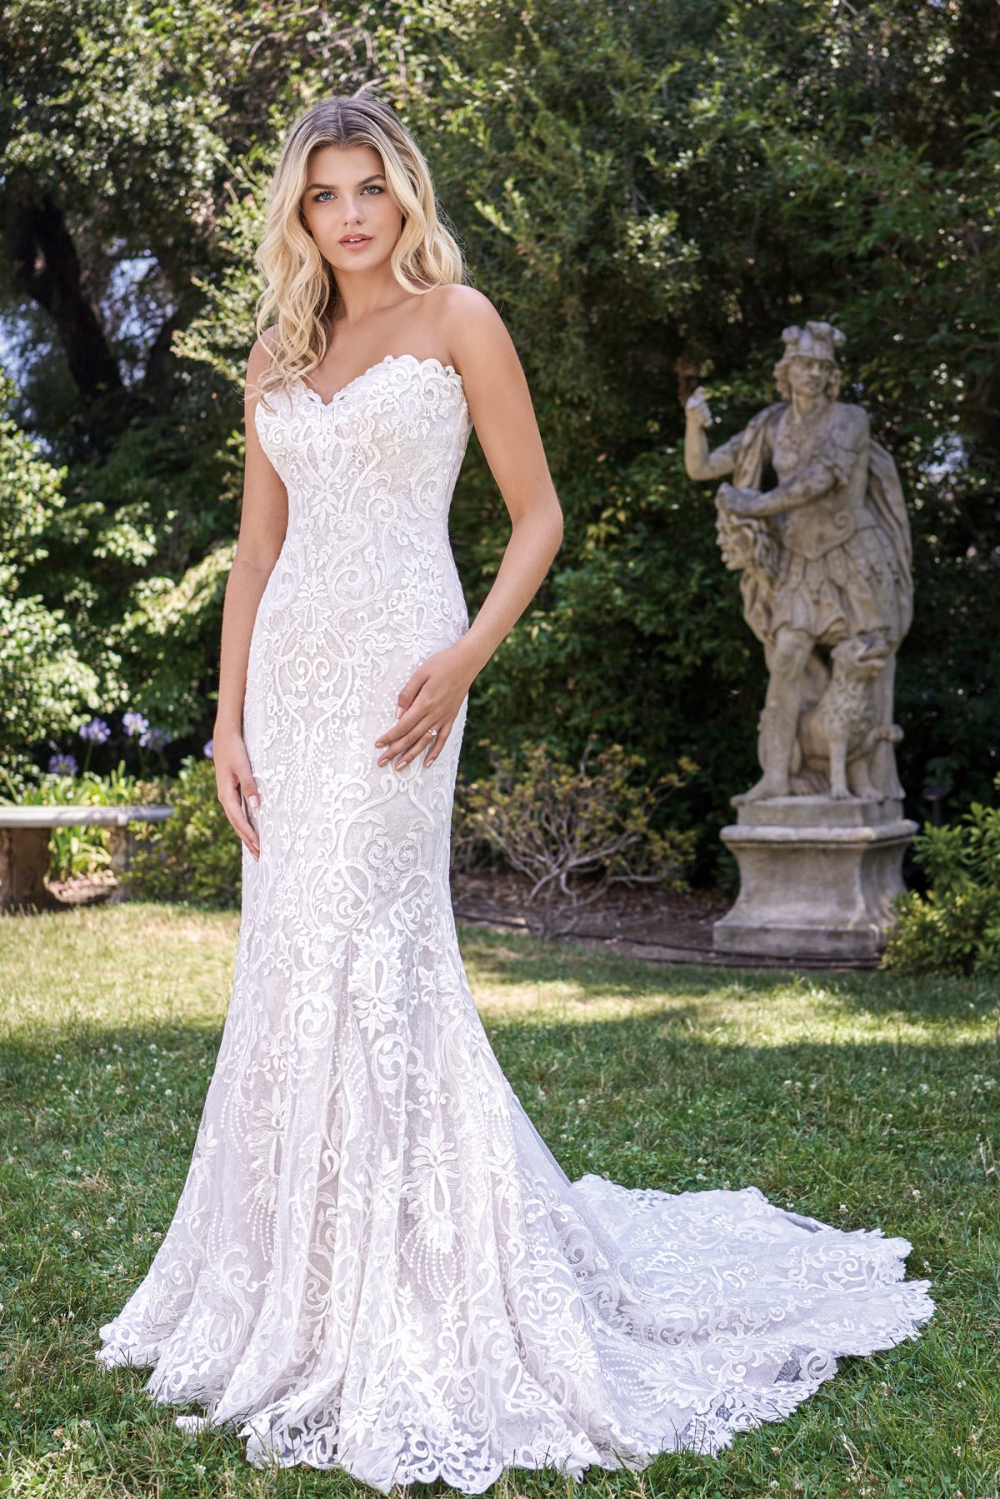 Try This Beautiful Dress Syb In Manchester Mo F221010 Romantic Lace Applique Strapless Wedding G In 2020 Strapless Wedding Gown Wedding Gowns Wedding Dress Brands